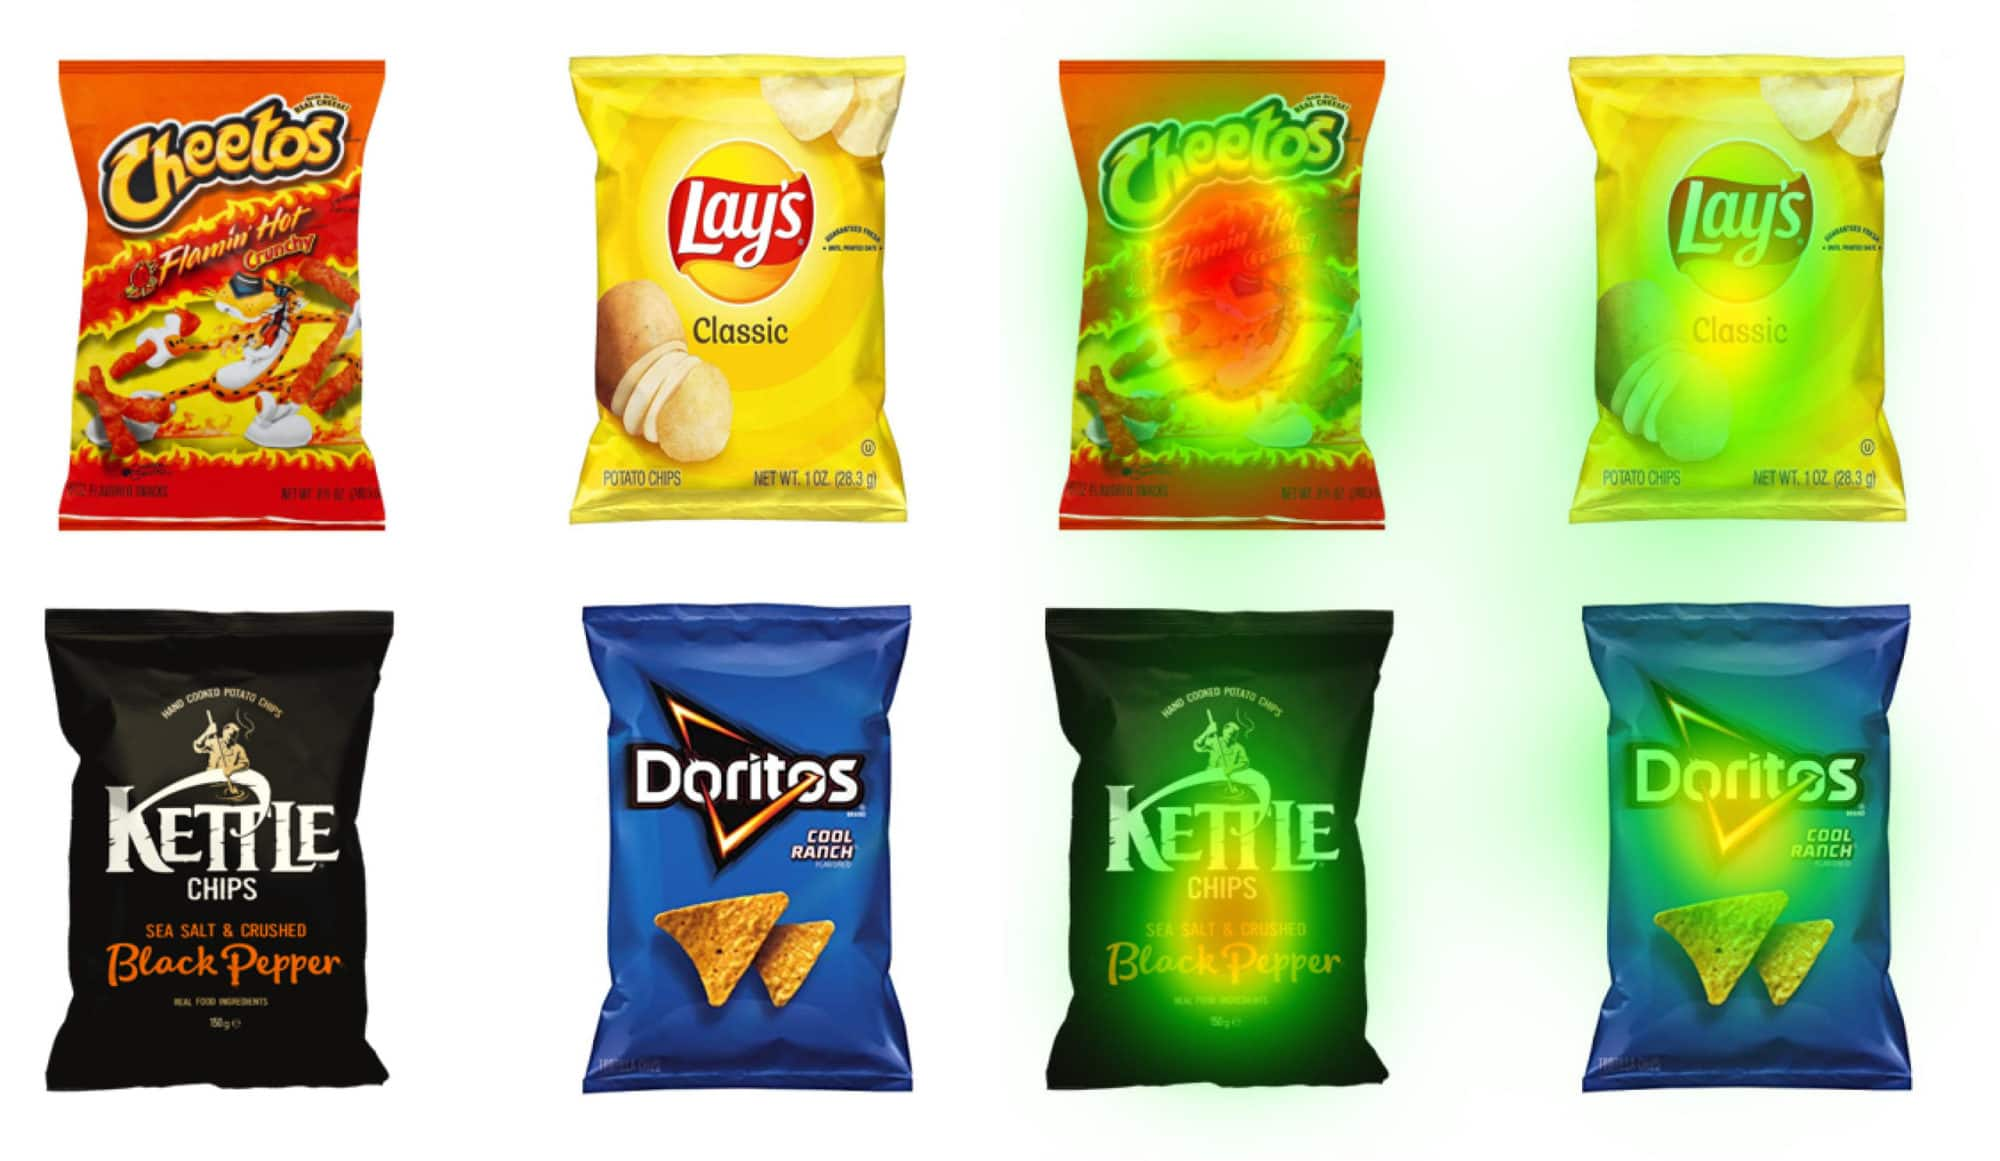 Chips packaging with the NeuroVision heatmaps over them.